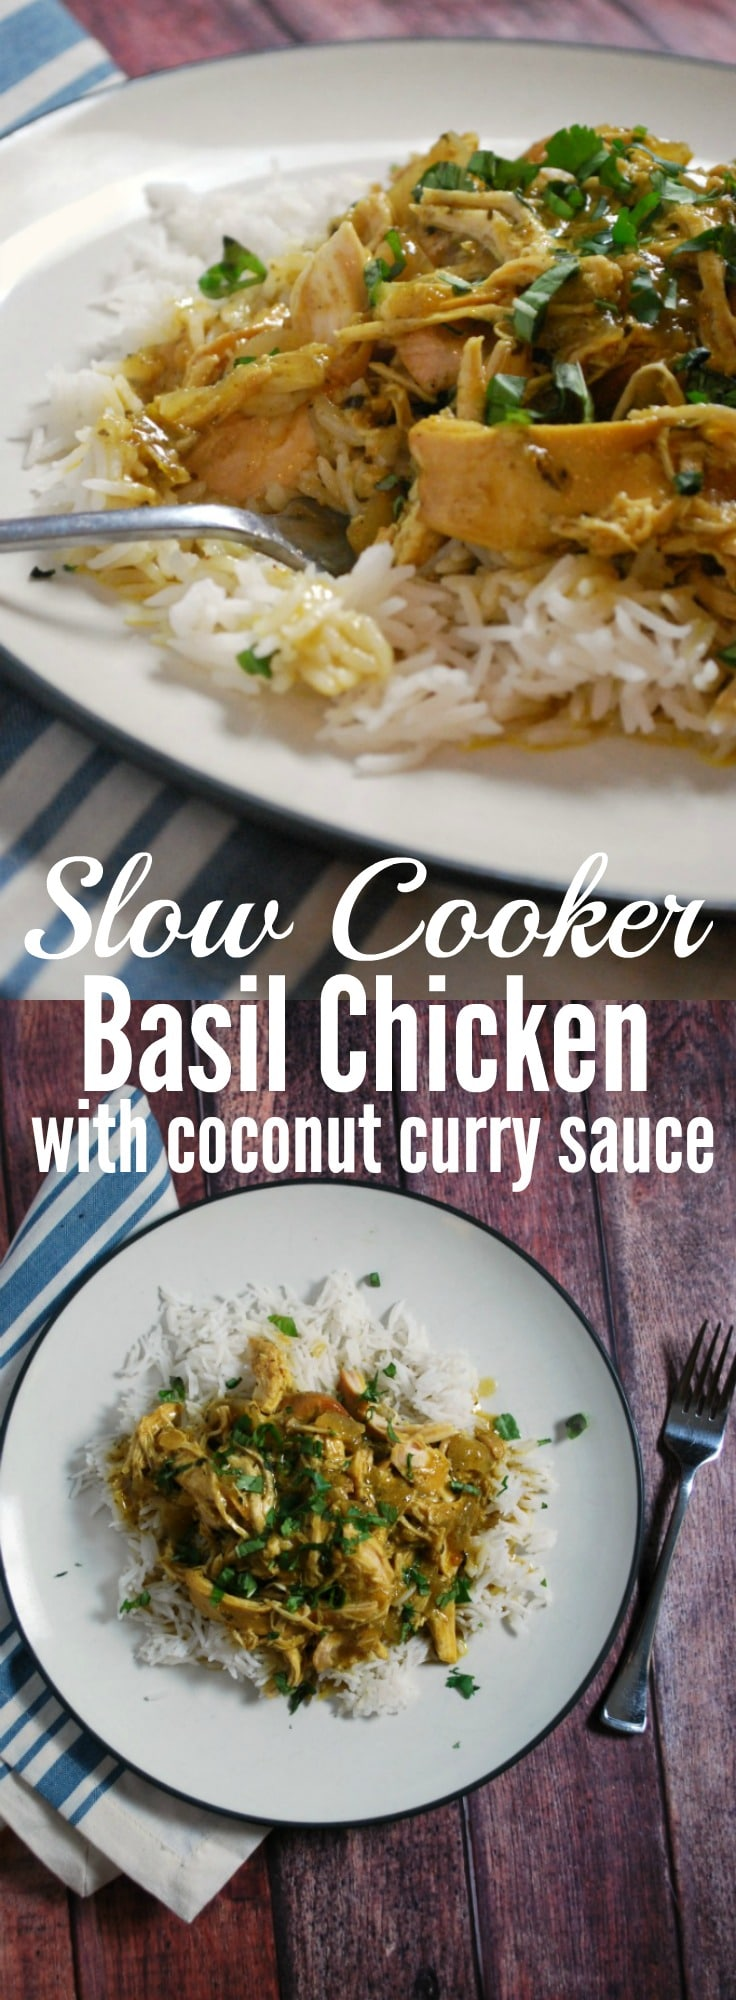 Crock Pot Basil Chicken with Coconut Curry Sauce - This slow cooker meal is simple, easy, and tastes great! Perfect family friendly weeknight meal!